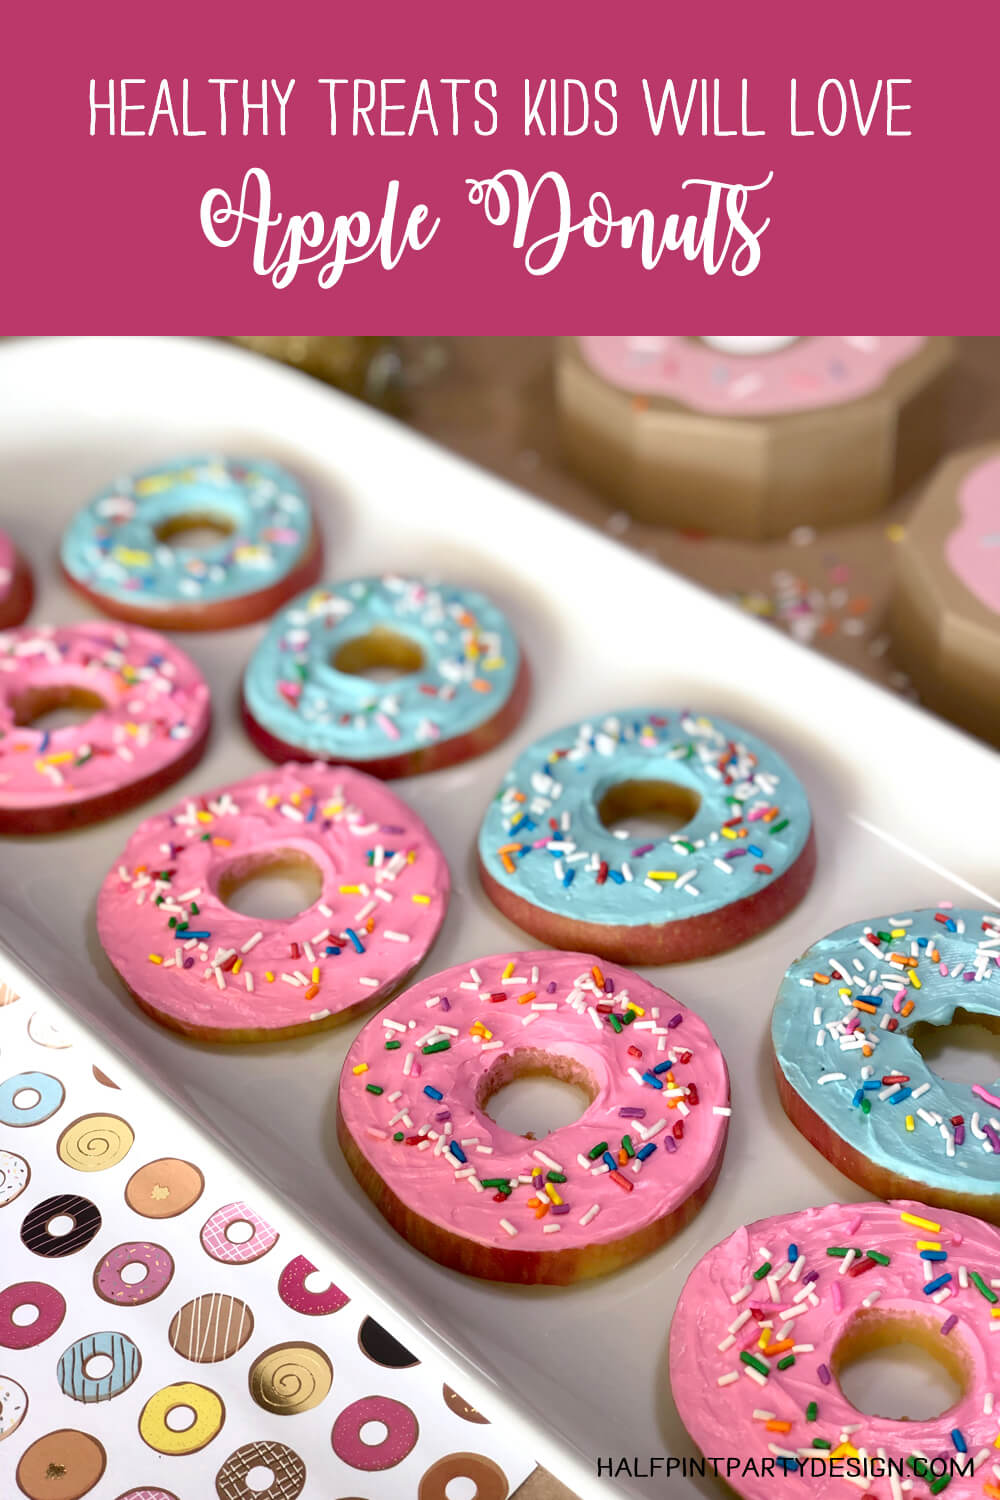 Healthy treats kids will love apple donuts